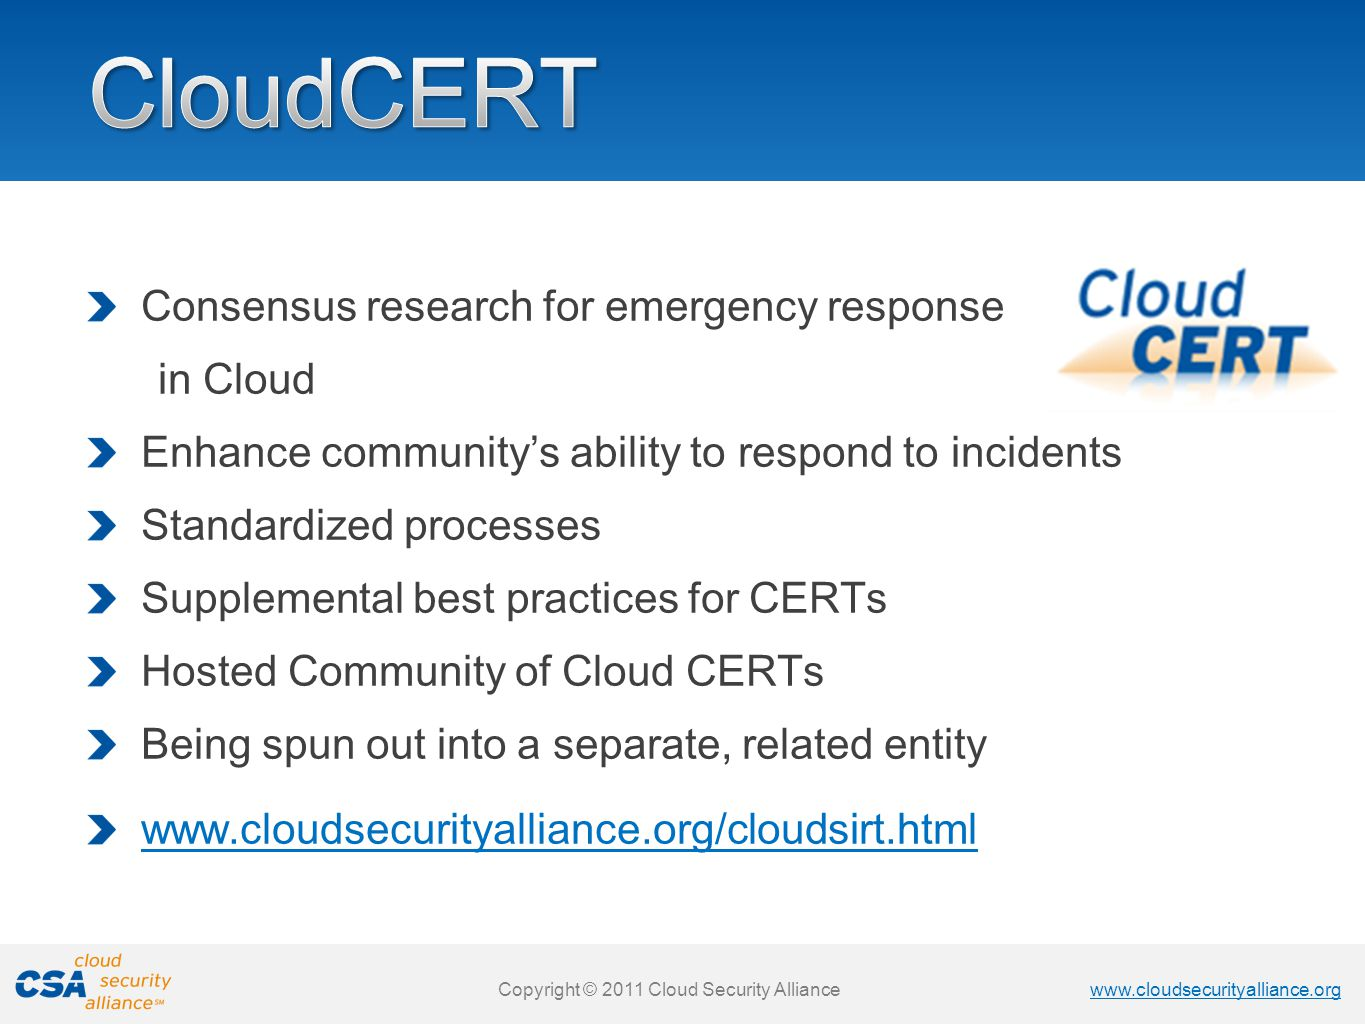 CloudCERT Consensus research for emergency response in Cloud